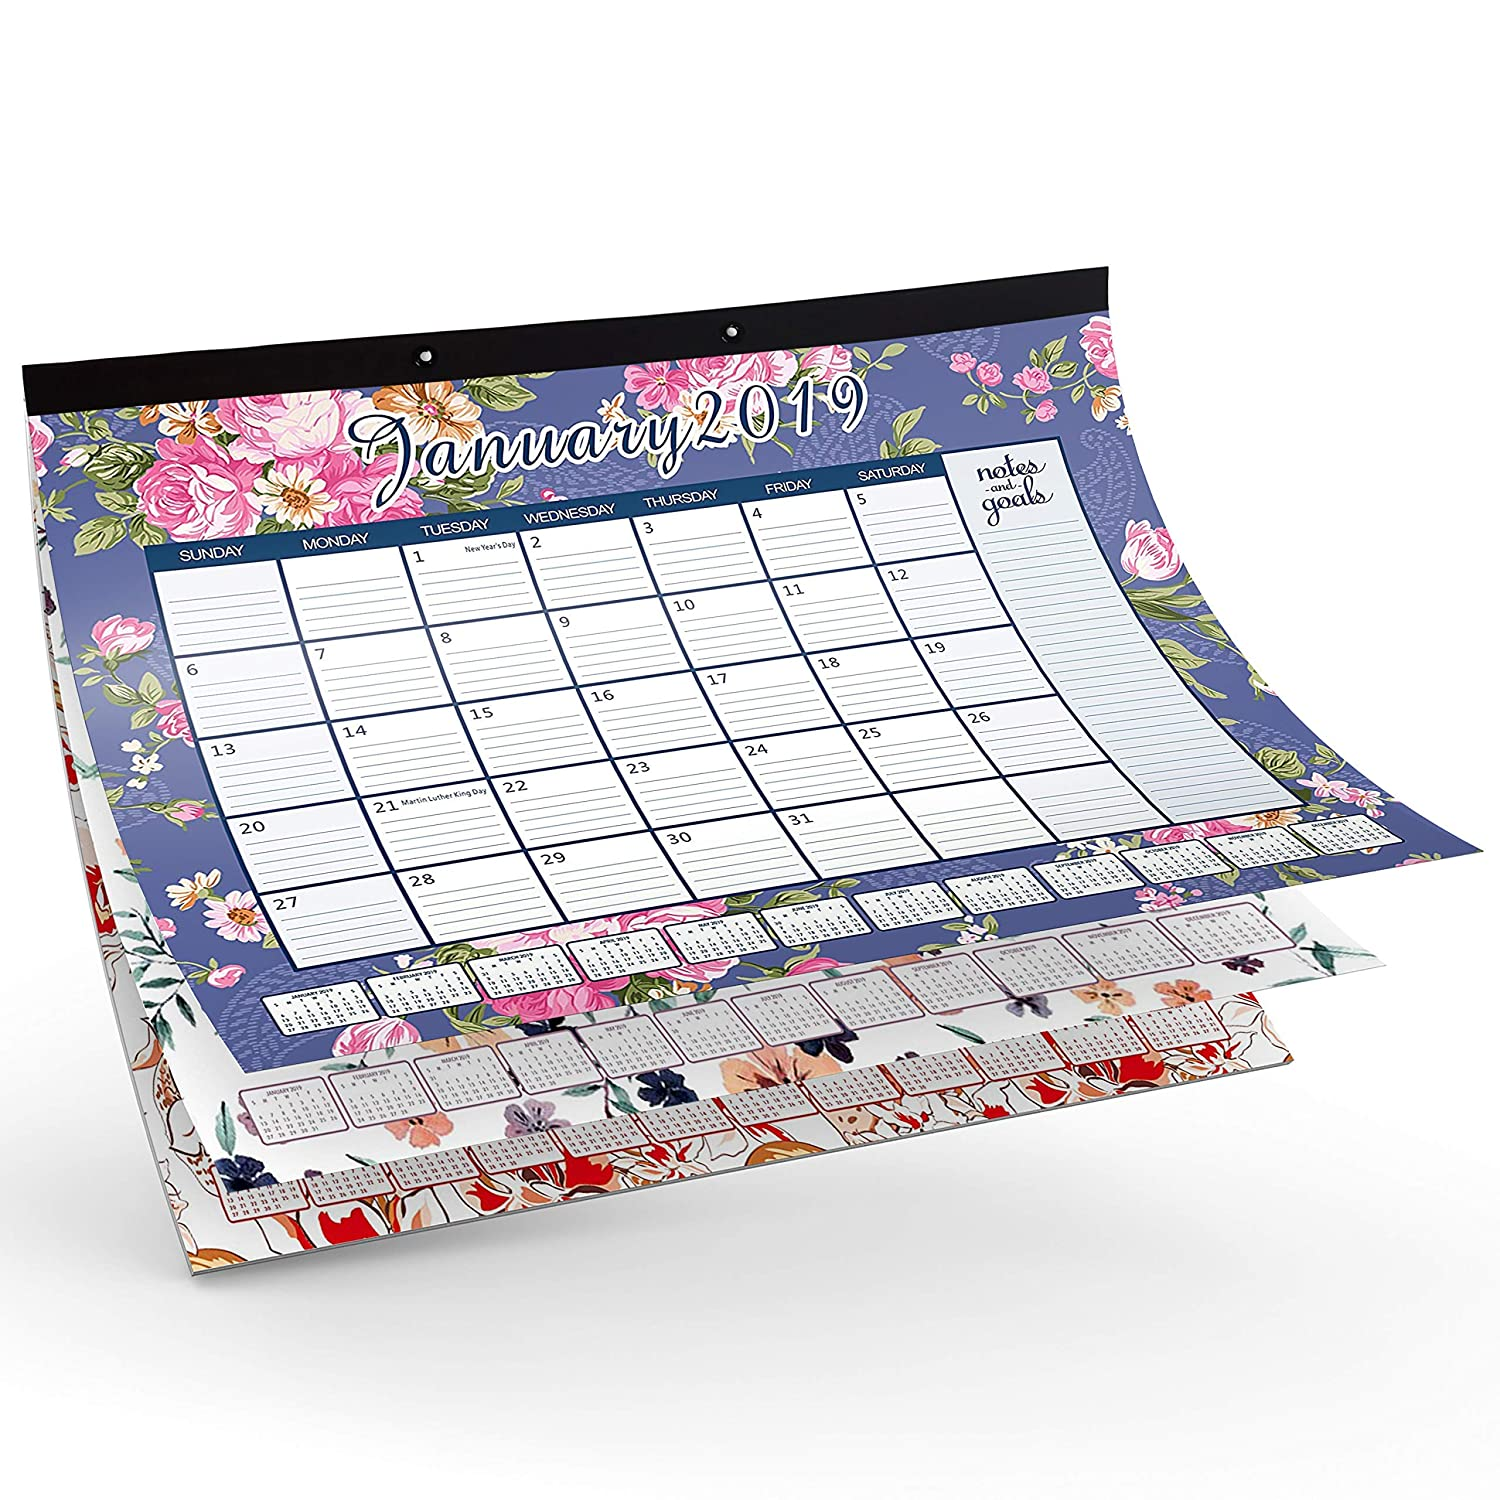 Ideal for Home and Office 12X17 Inch with PVC Corner Protector Daily Tools Wall Desk Calendar 2019 Wall Desk Calendar and Planner Jan-2019 to Dec-2019 Easy Tear Off Style